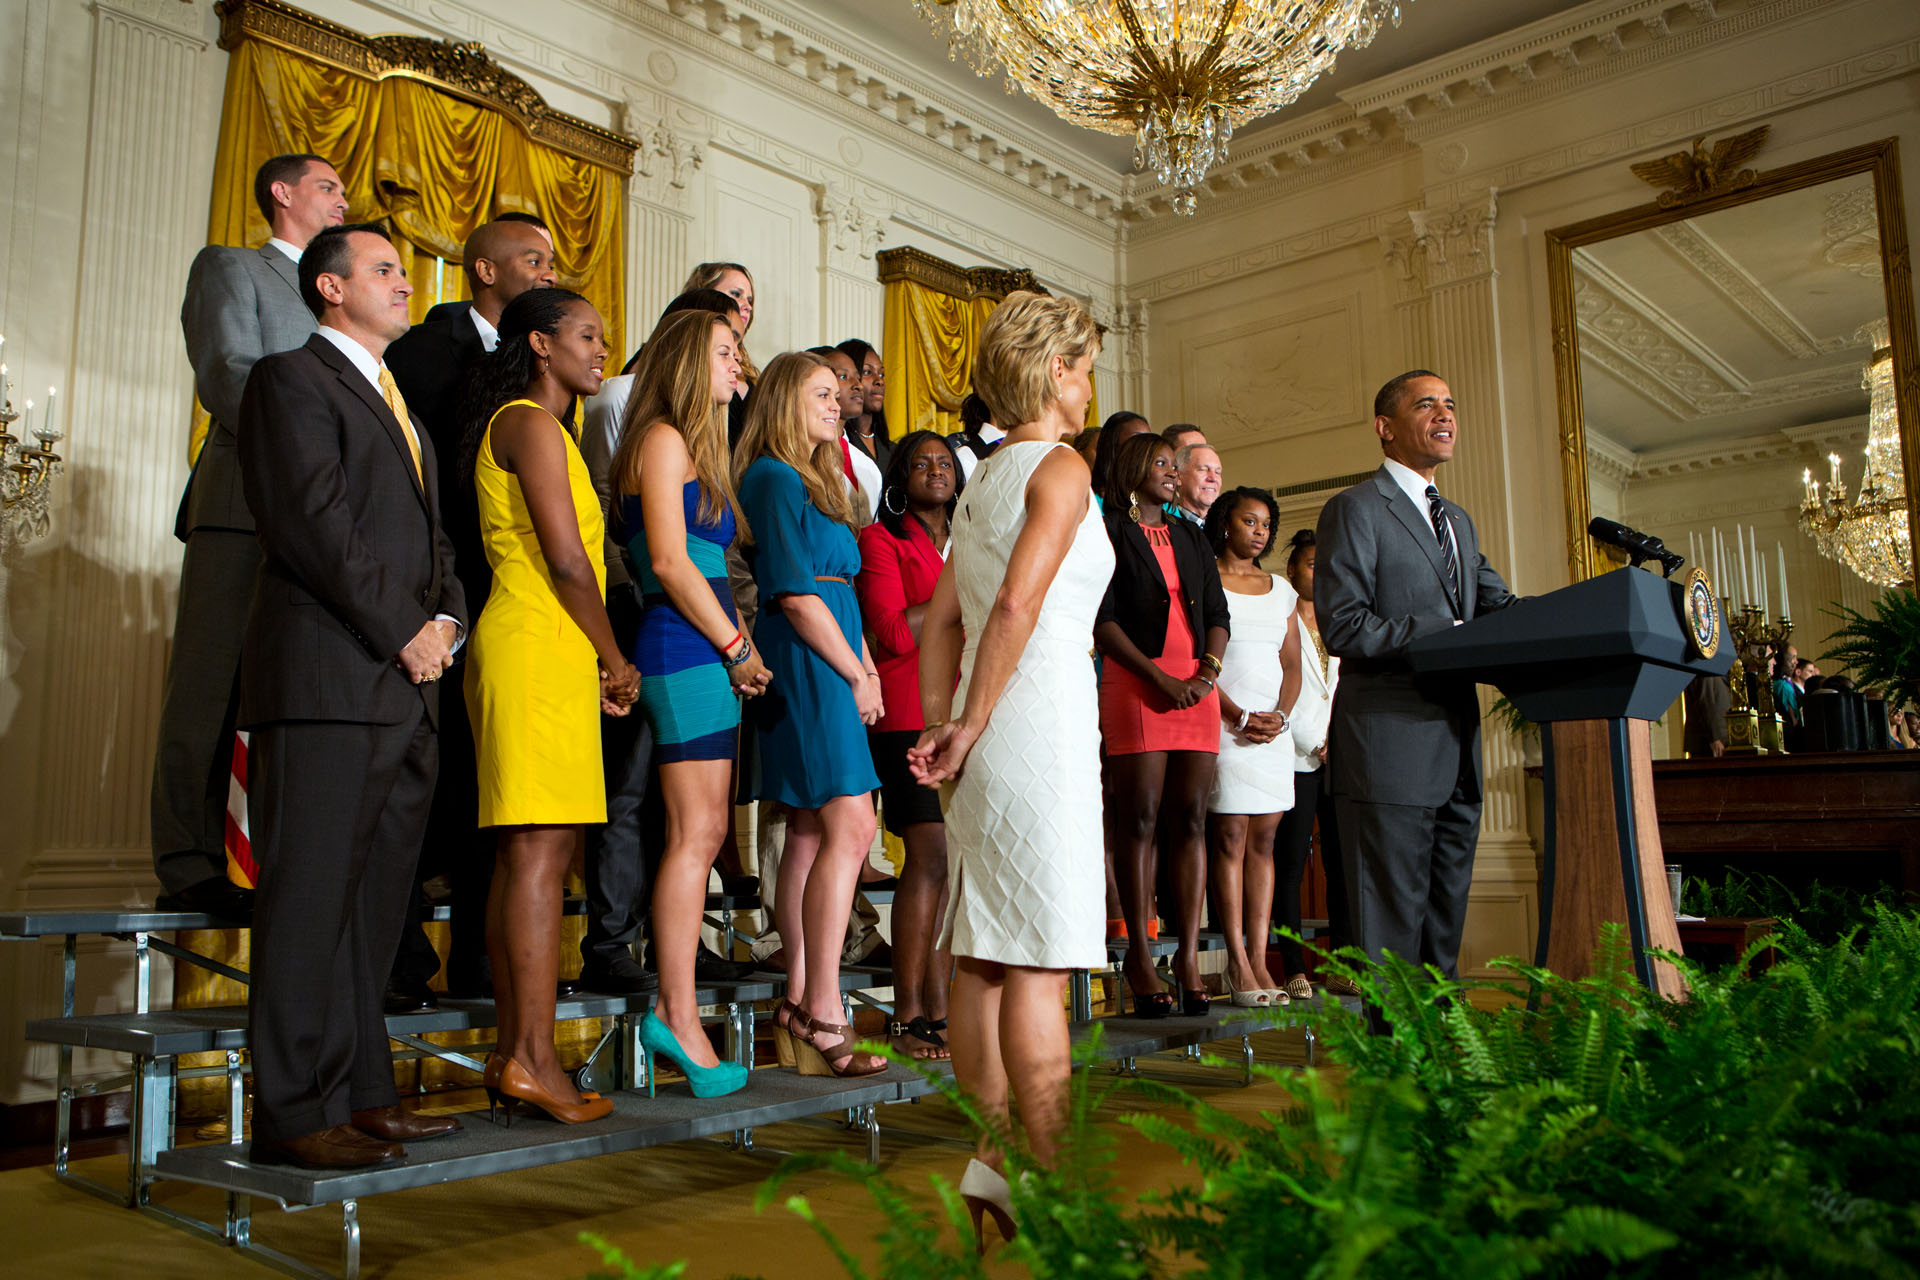 President Barack Obama welcomes the 2012 NCAA Women's Basketball Champion Baylor Bears to the White House (July 18, 2012)